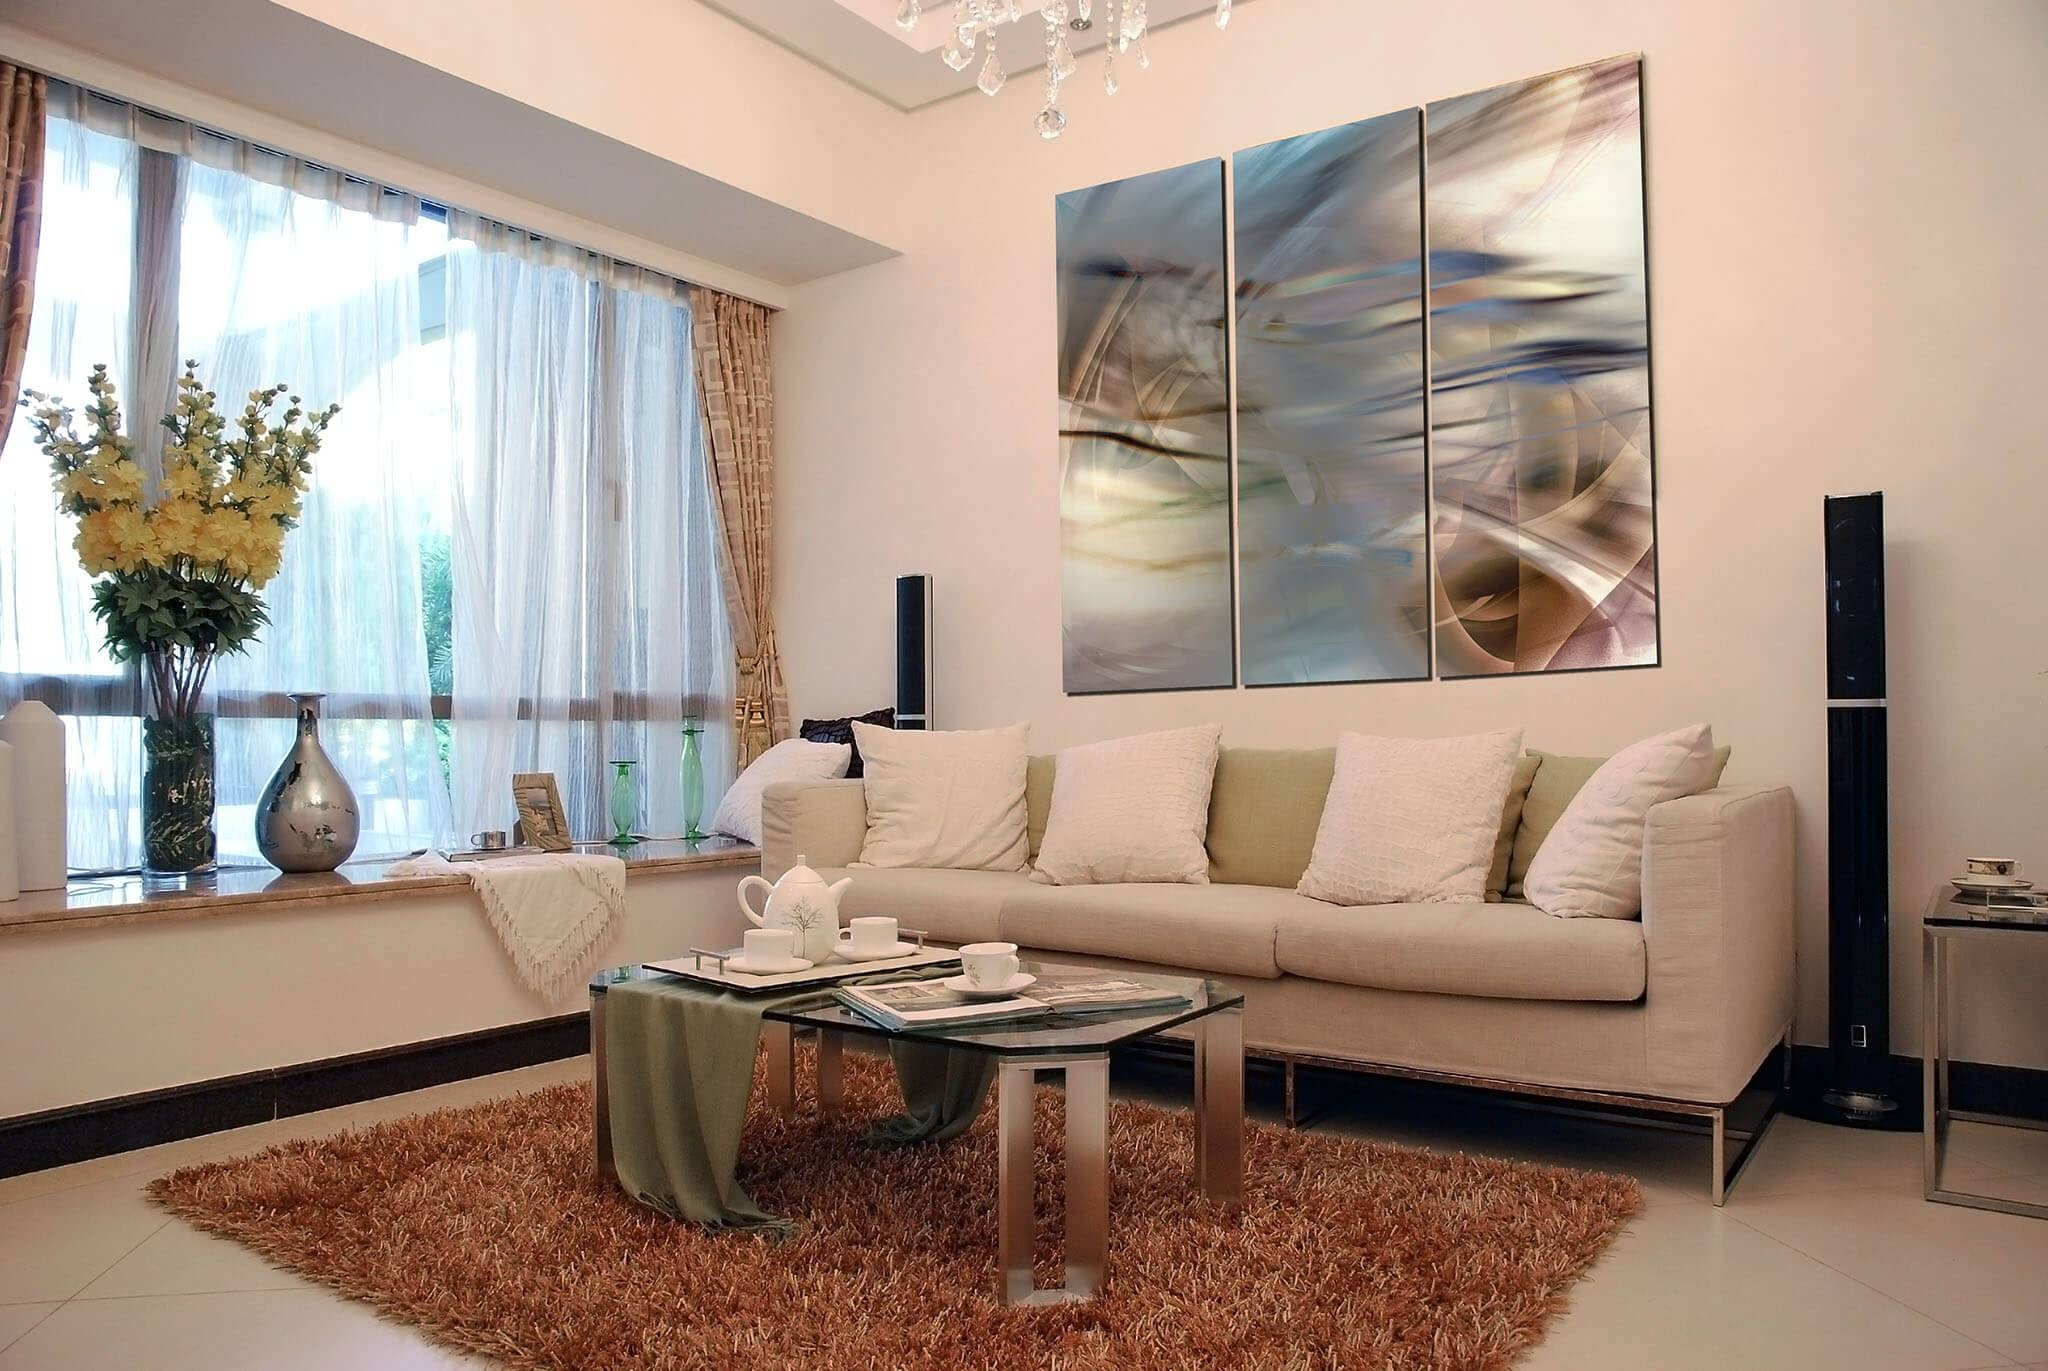 Best ideas about Family Room Wall Decorations . Save or Pin 20 Best Collection of Framed Wall Art Now.